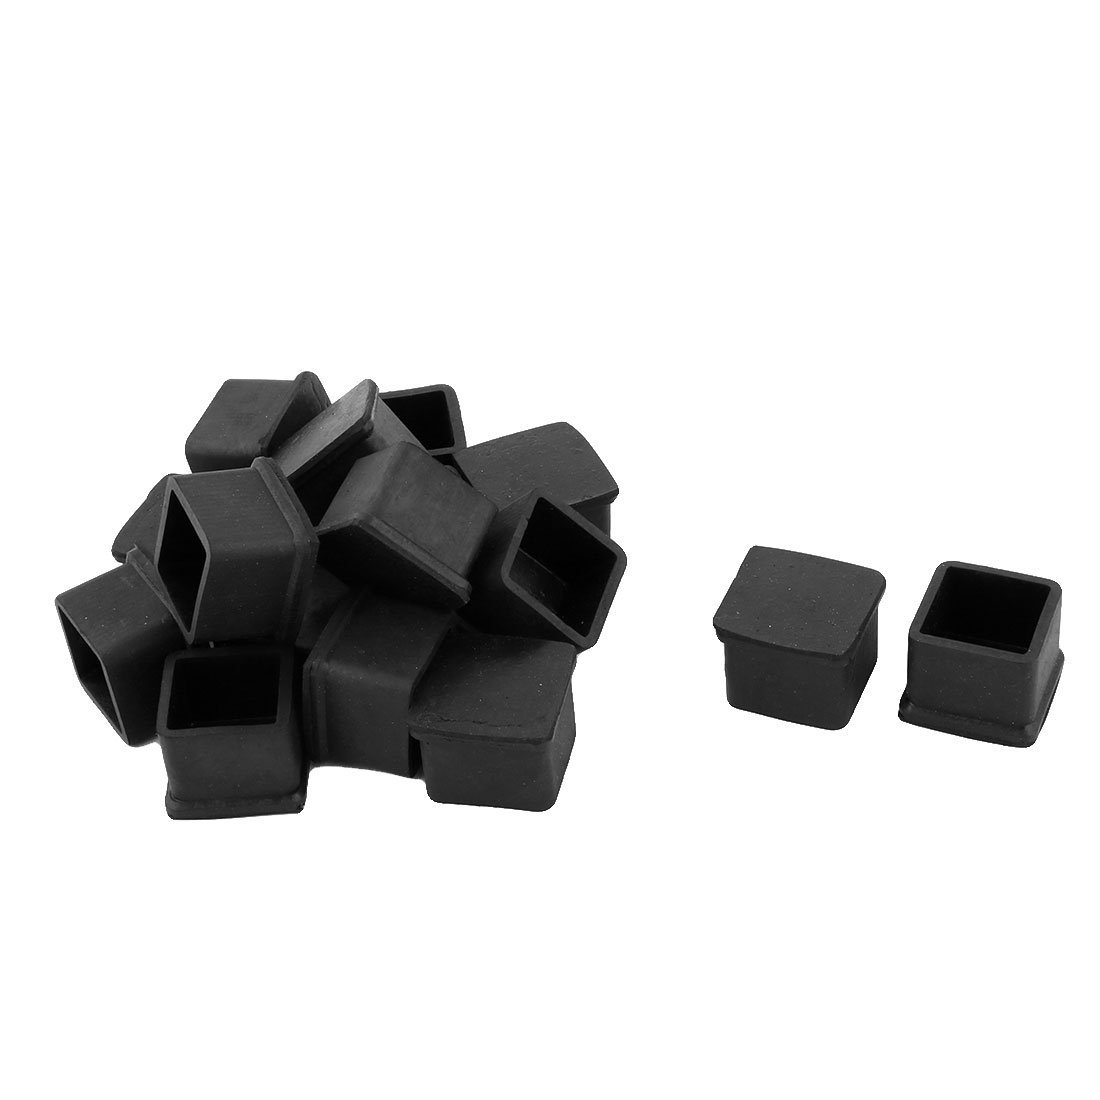 Rubber Square Covers Furniture Table Leg Foot Protectors 50x50mm Black Year-End Bargain Sale Furniture Legs